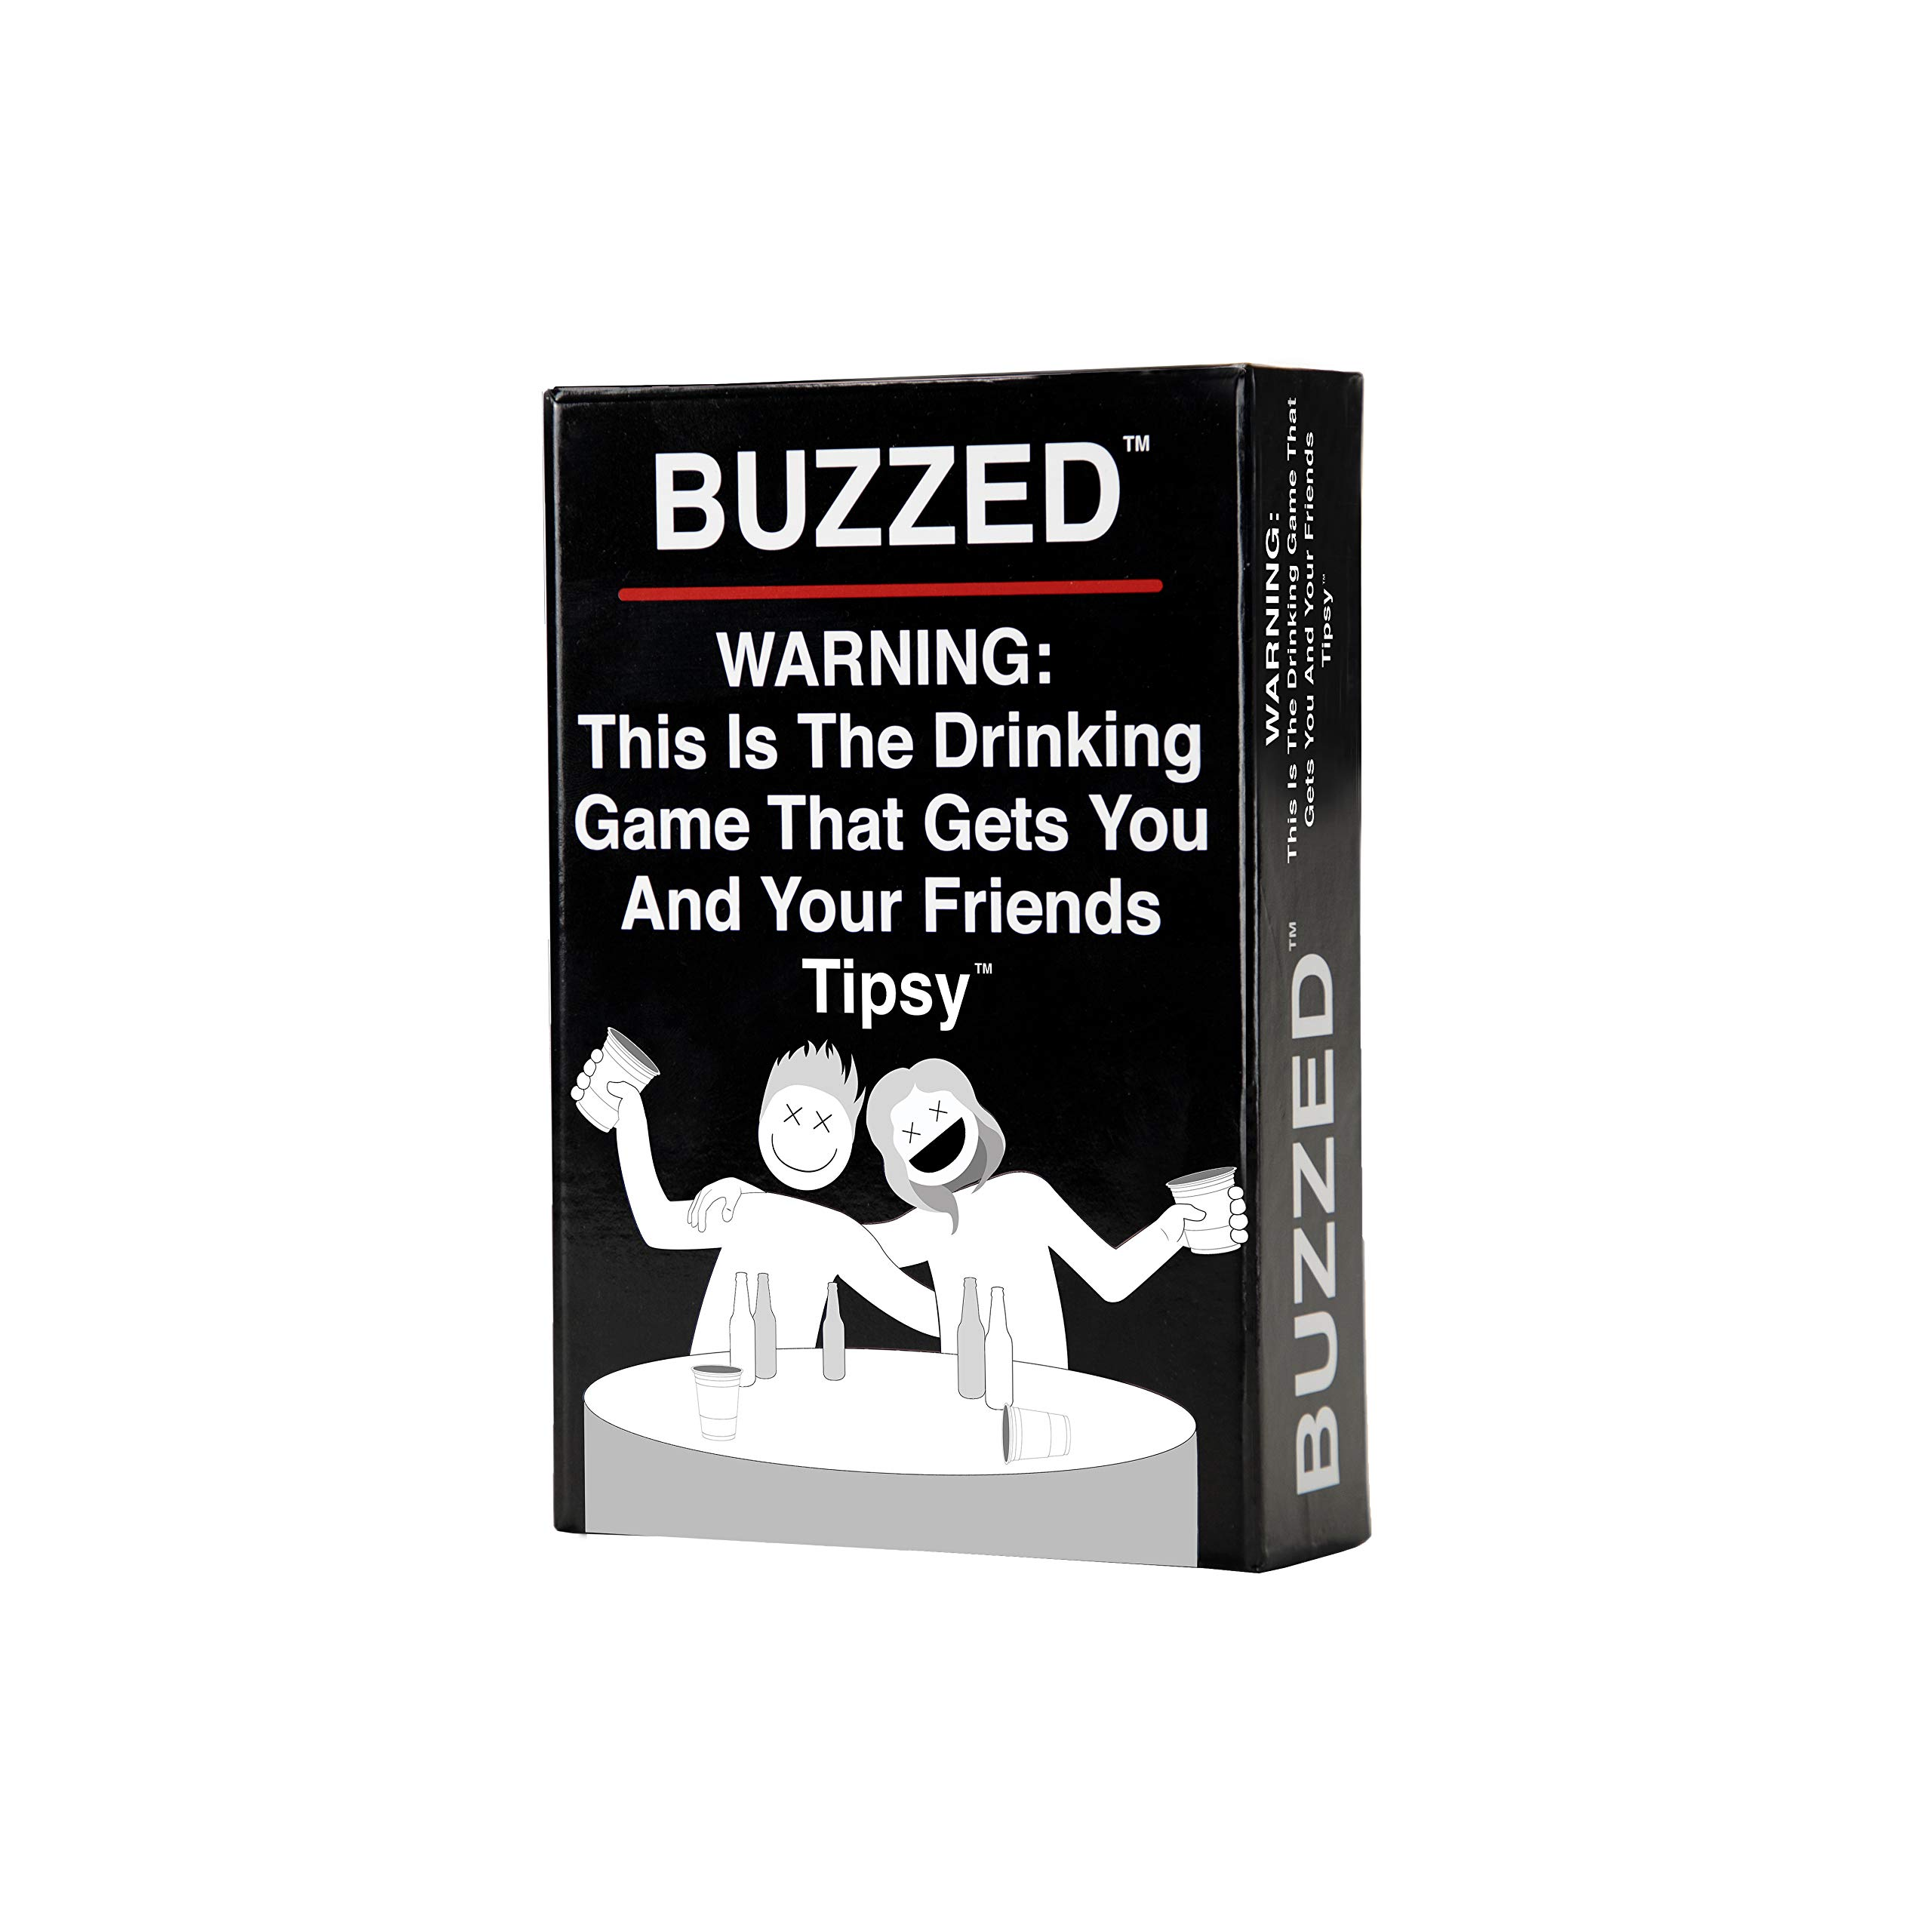 Buzzed - This is The Drinking Game That Gets You and Your Friends Tipsy! by WHAT DO YOU MEME?